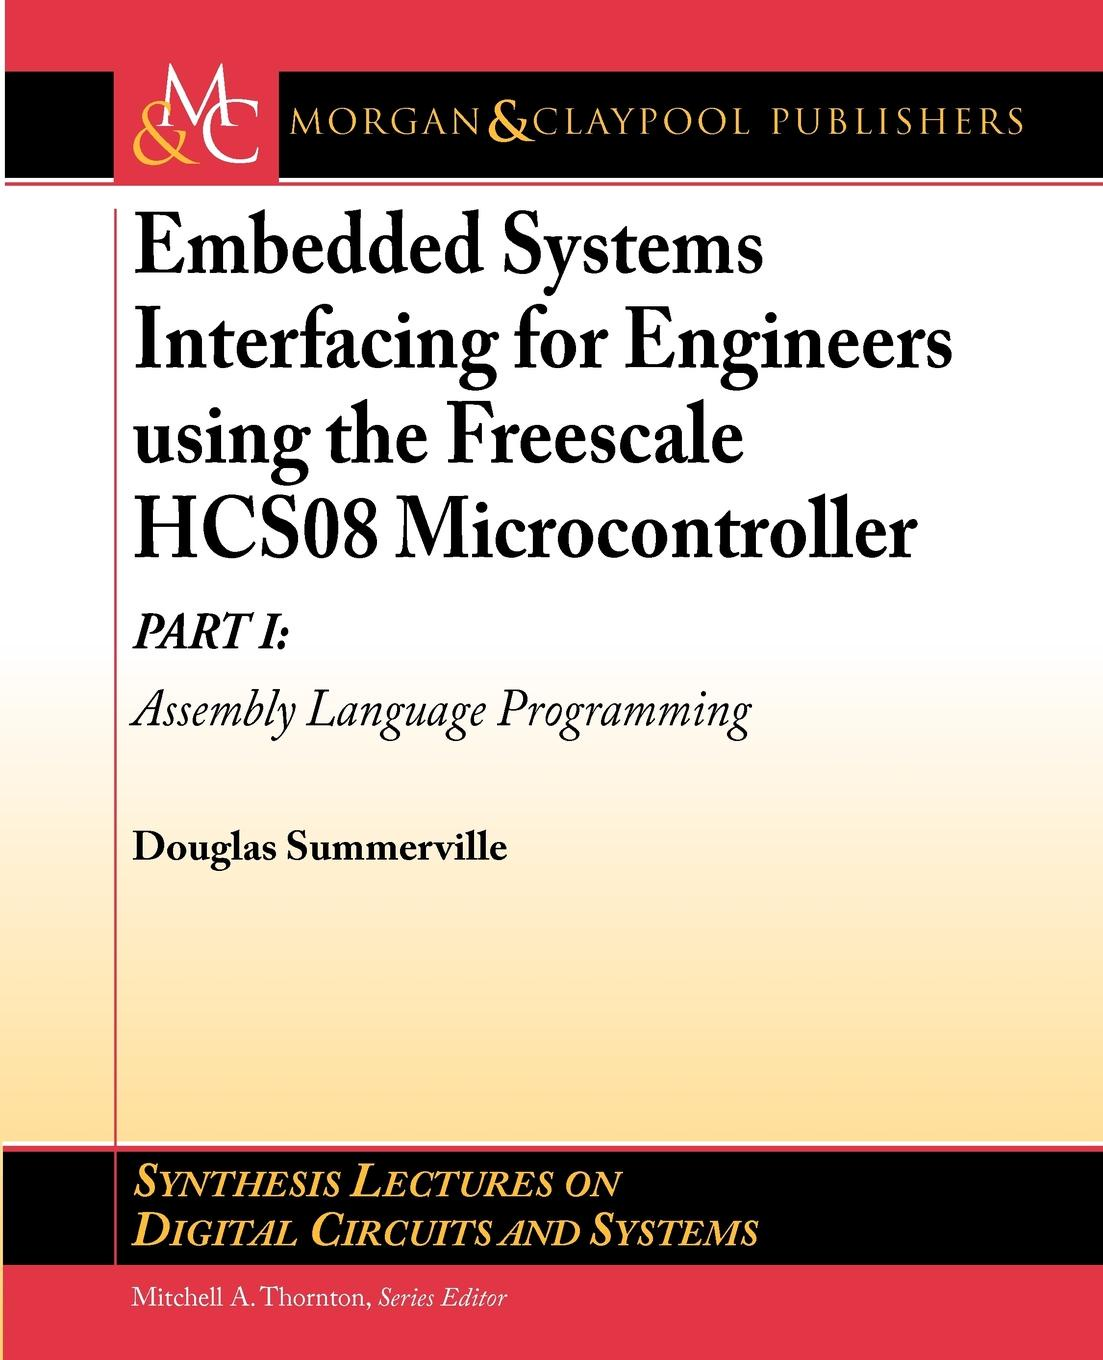 Douglas Summerville Embedded Systems Interfacing for Engineers using the Freescale HCS08 Microcontroller I. Assembly Language Programming 10pcs lot new original atmega328p pu atmega328 microcontroller dip28